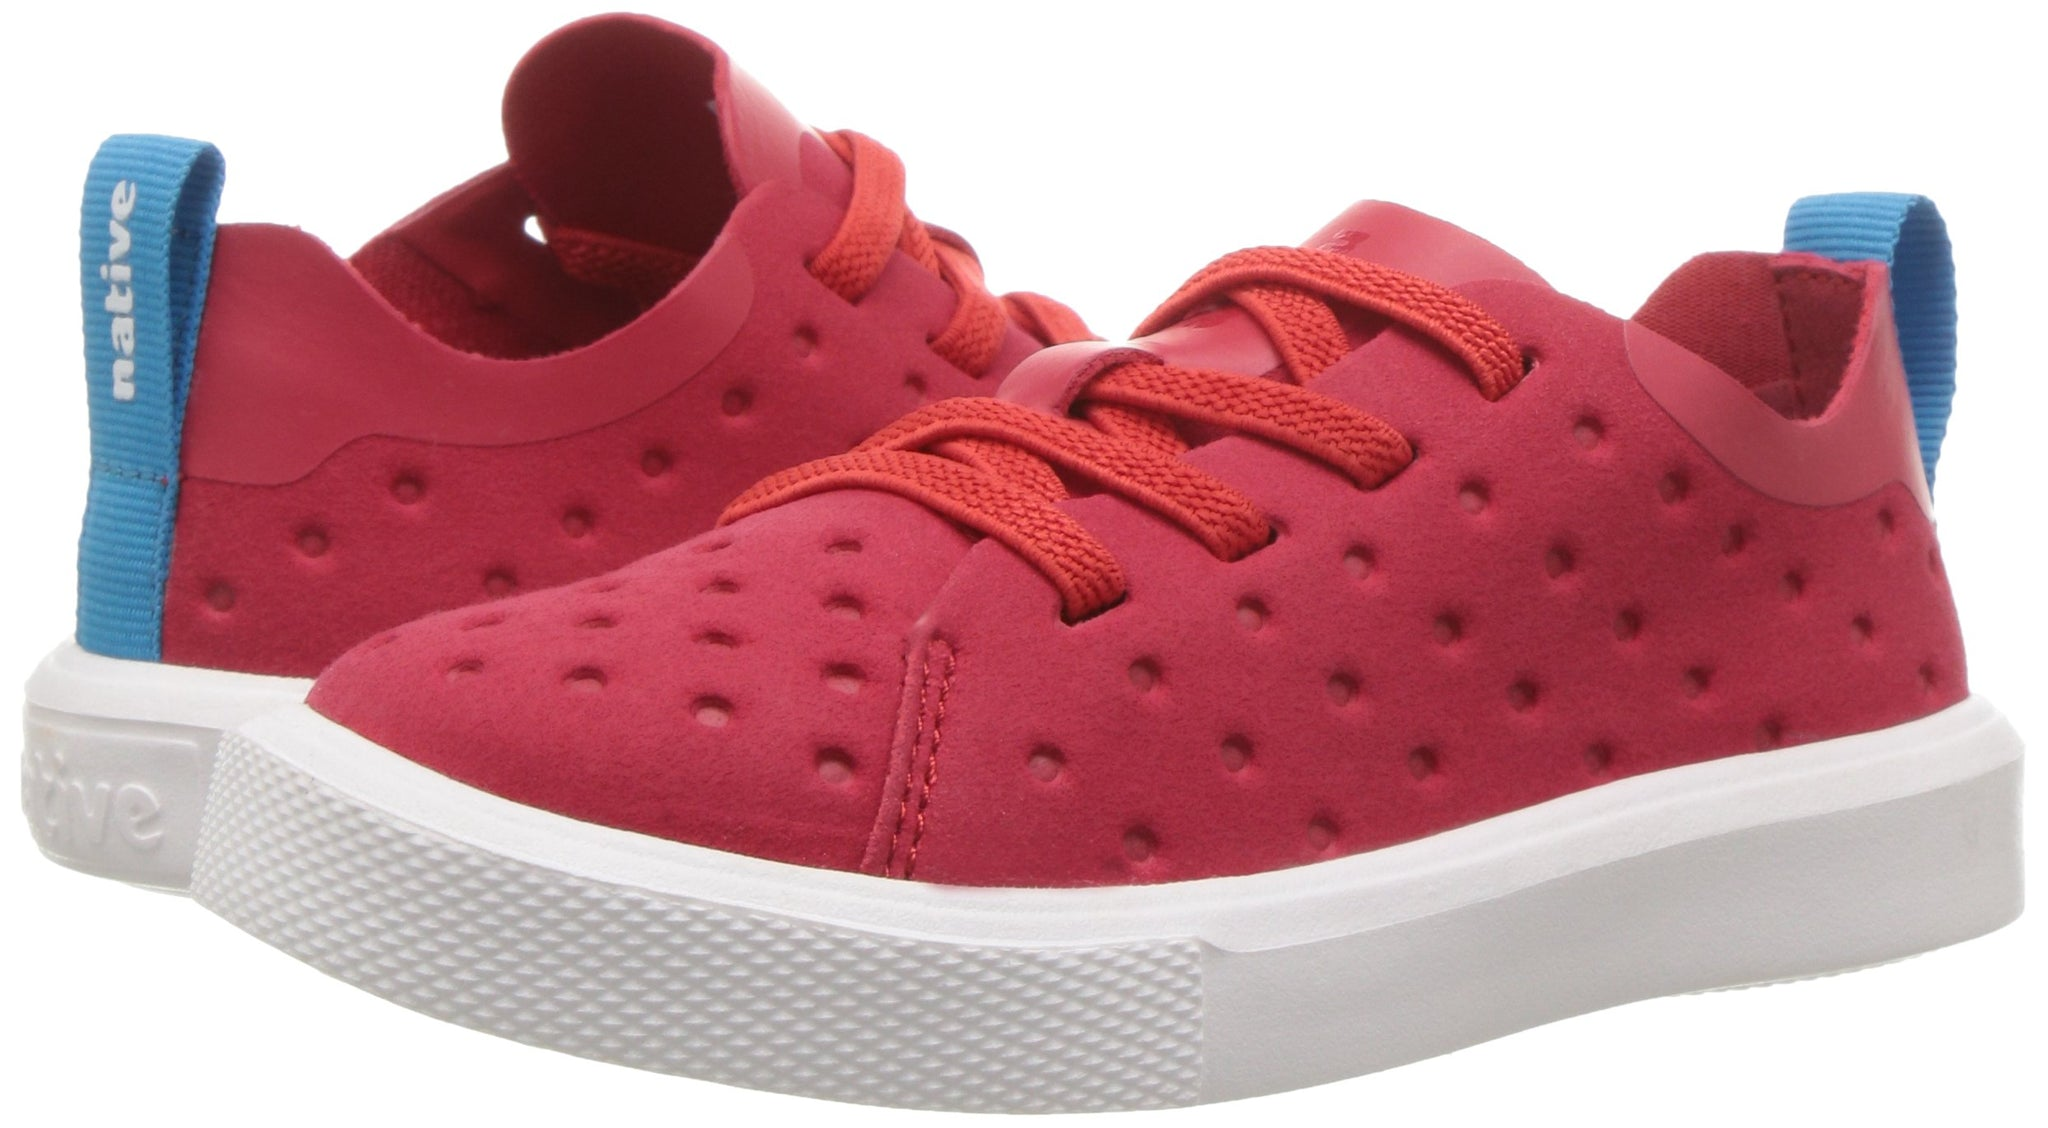 Native Shoes monaco Low torch red